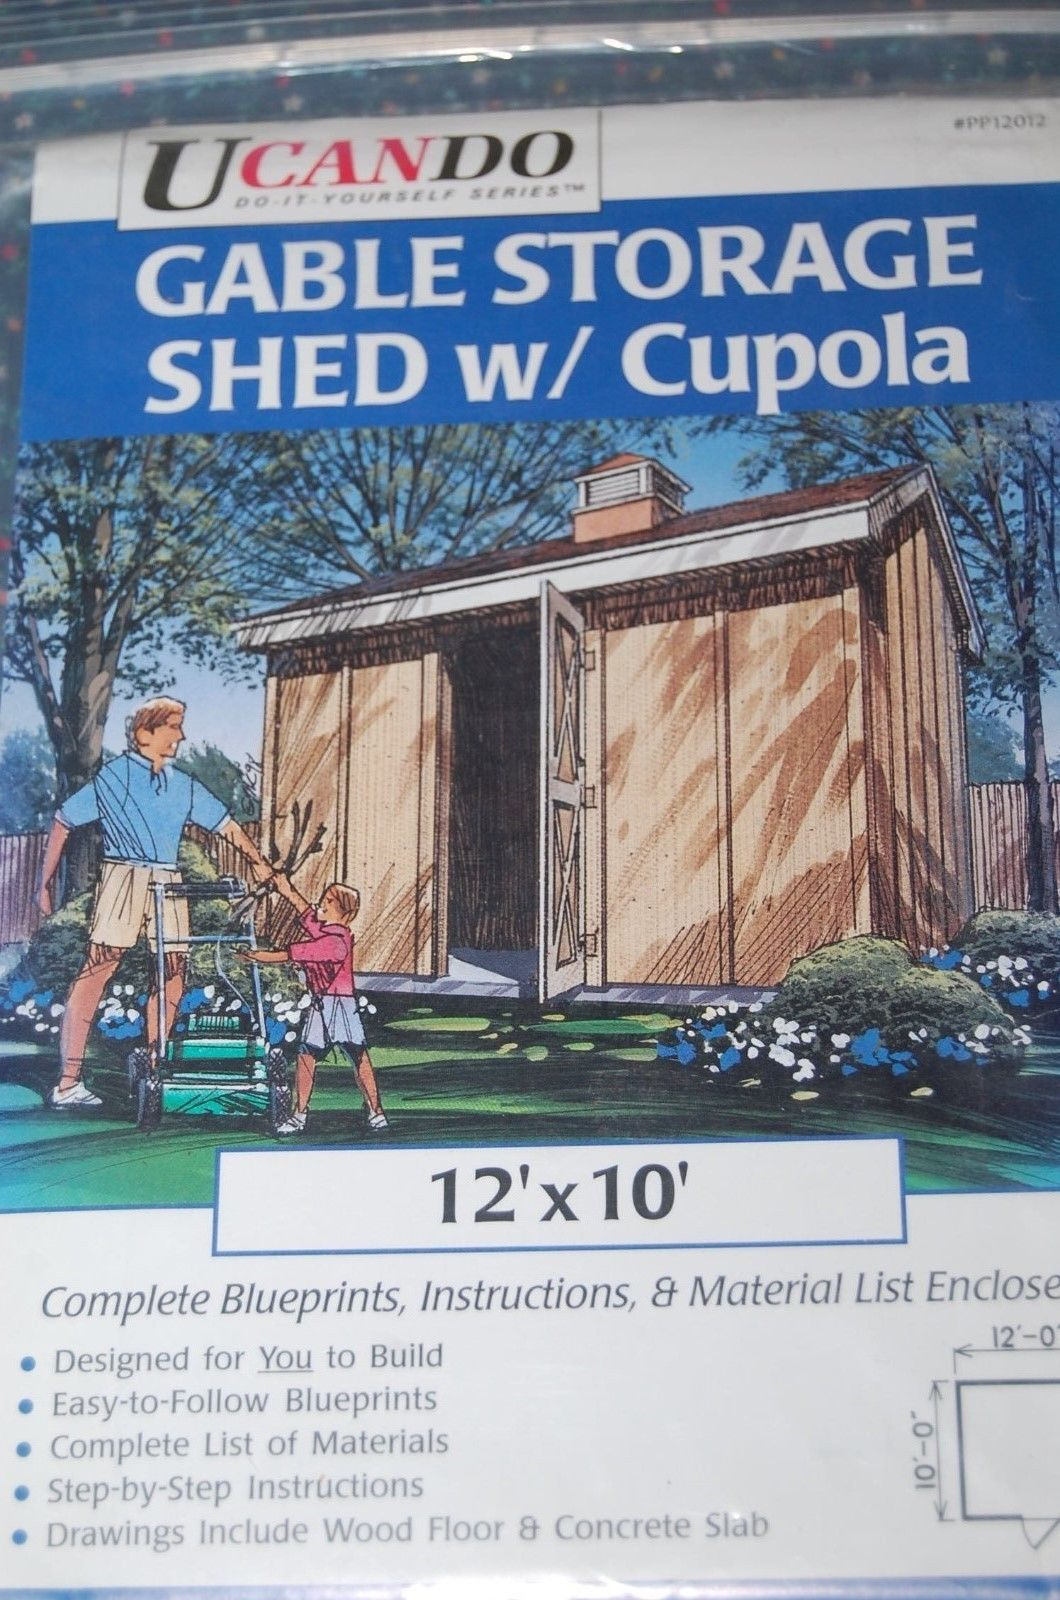 UCANDO~#PP12012~Gable Storage Shed w/Cupola~Blueprints for 12' x 10'